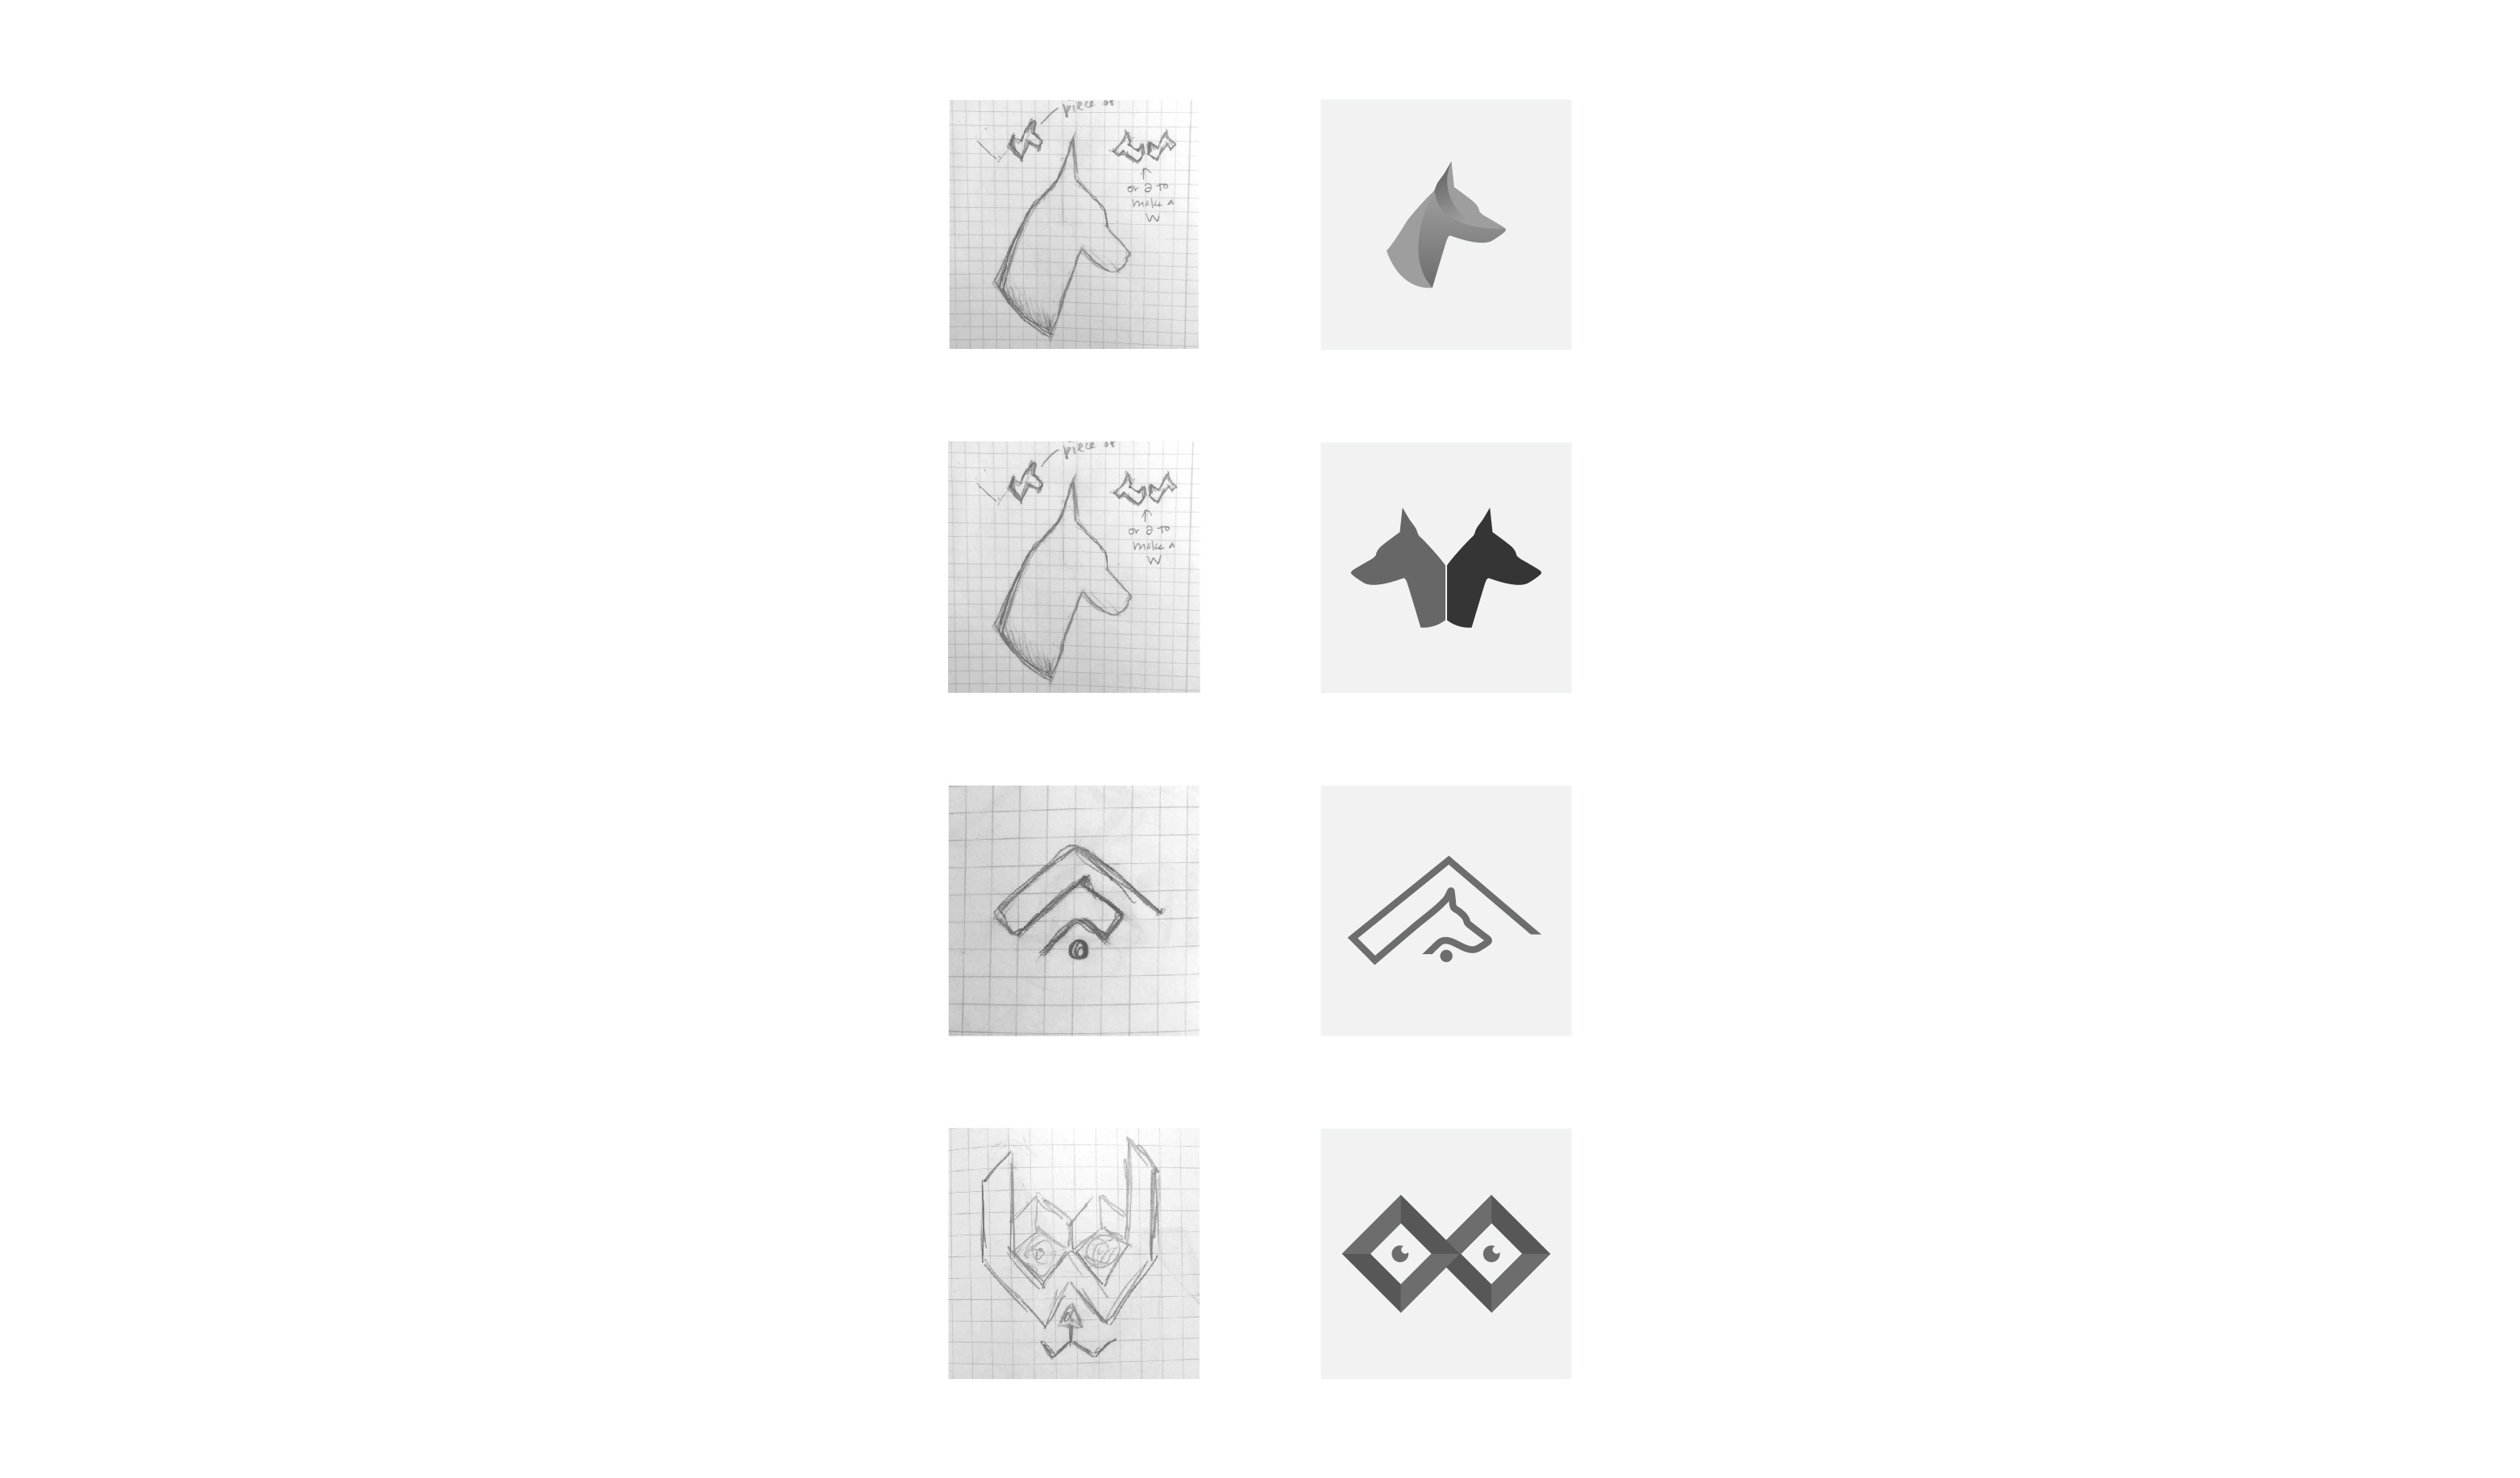 WW_Logo_Redesign_Concept_Sketches-05.jpg